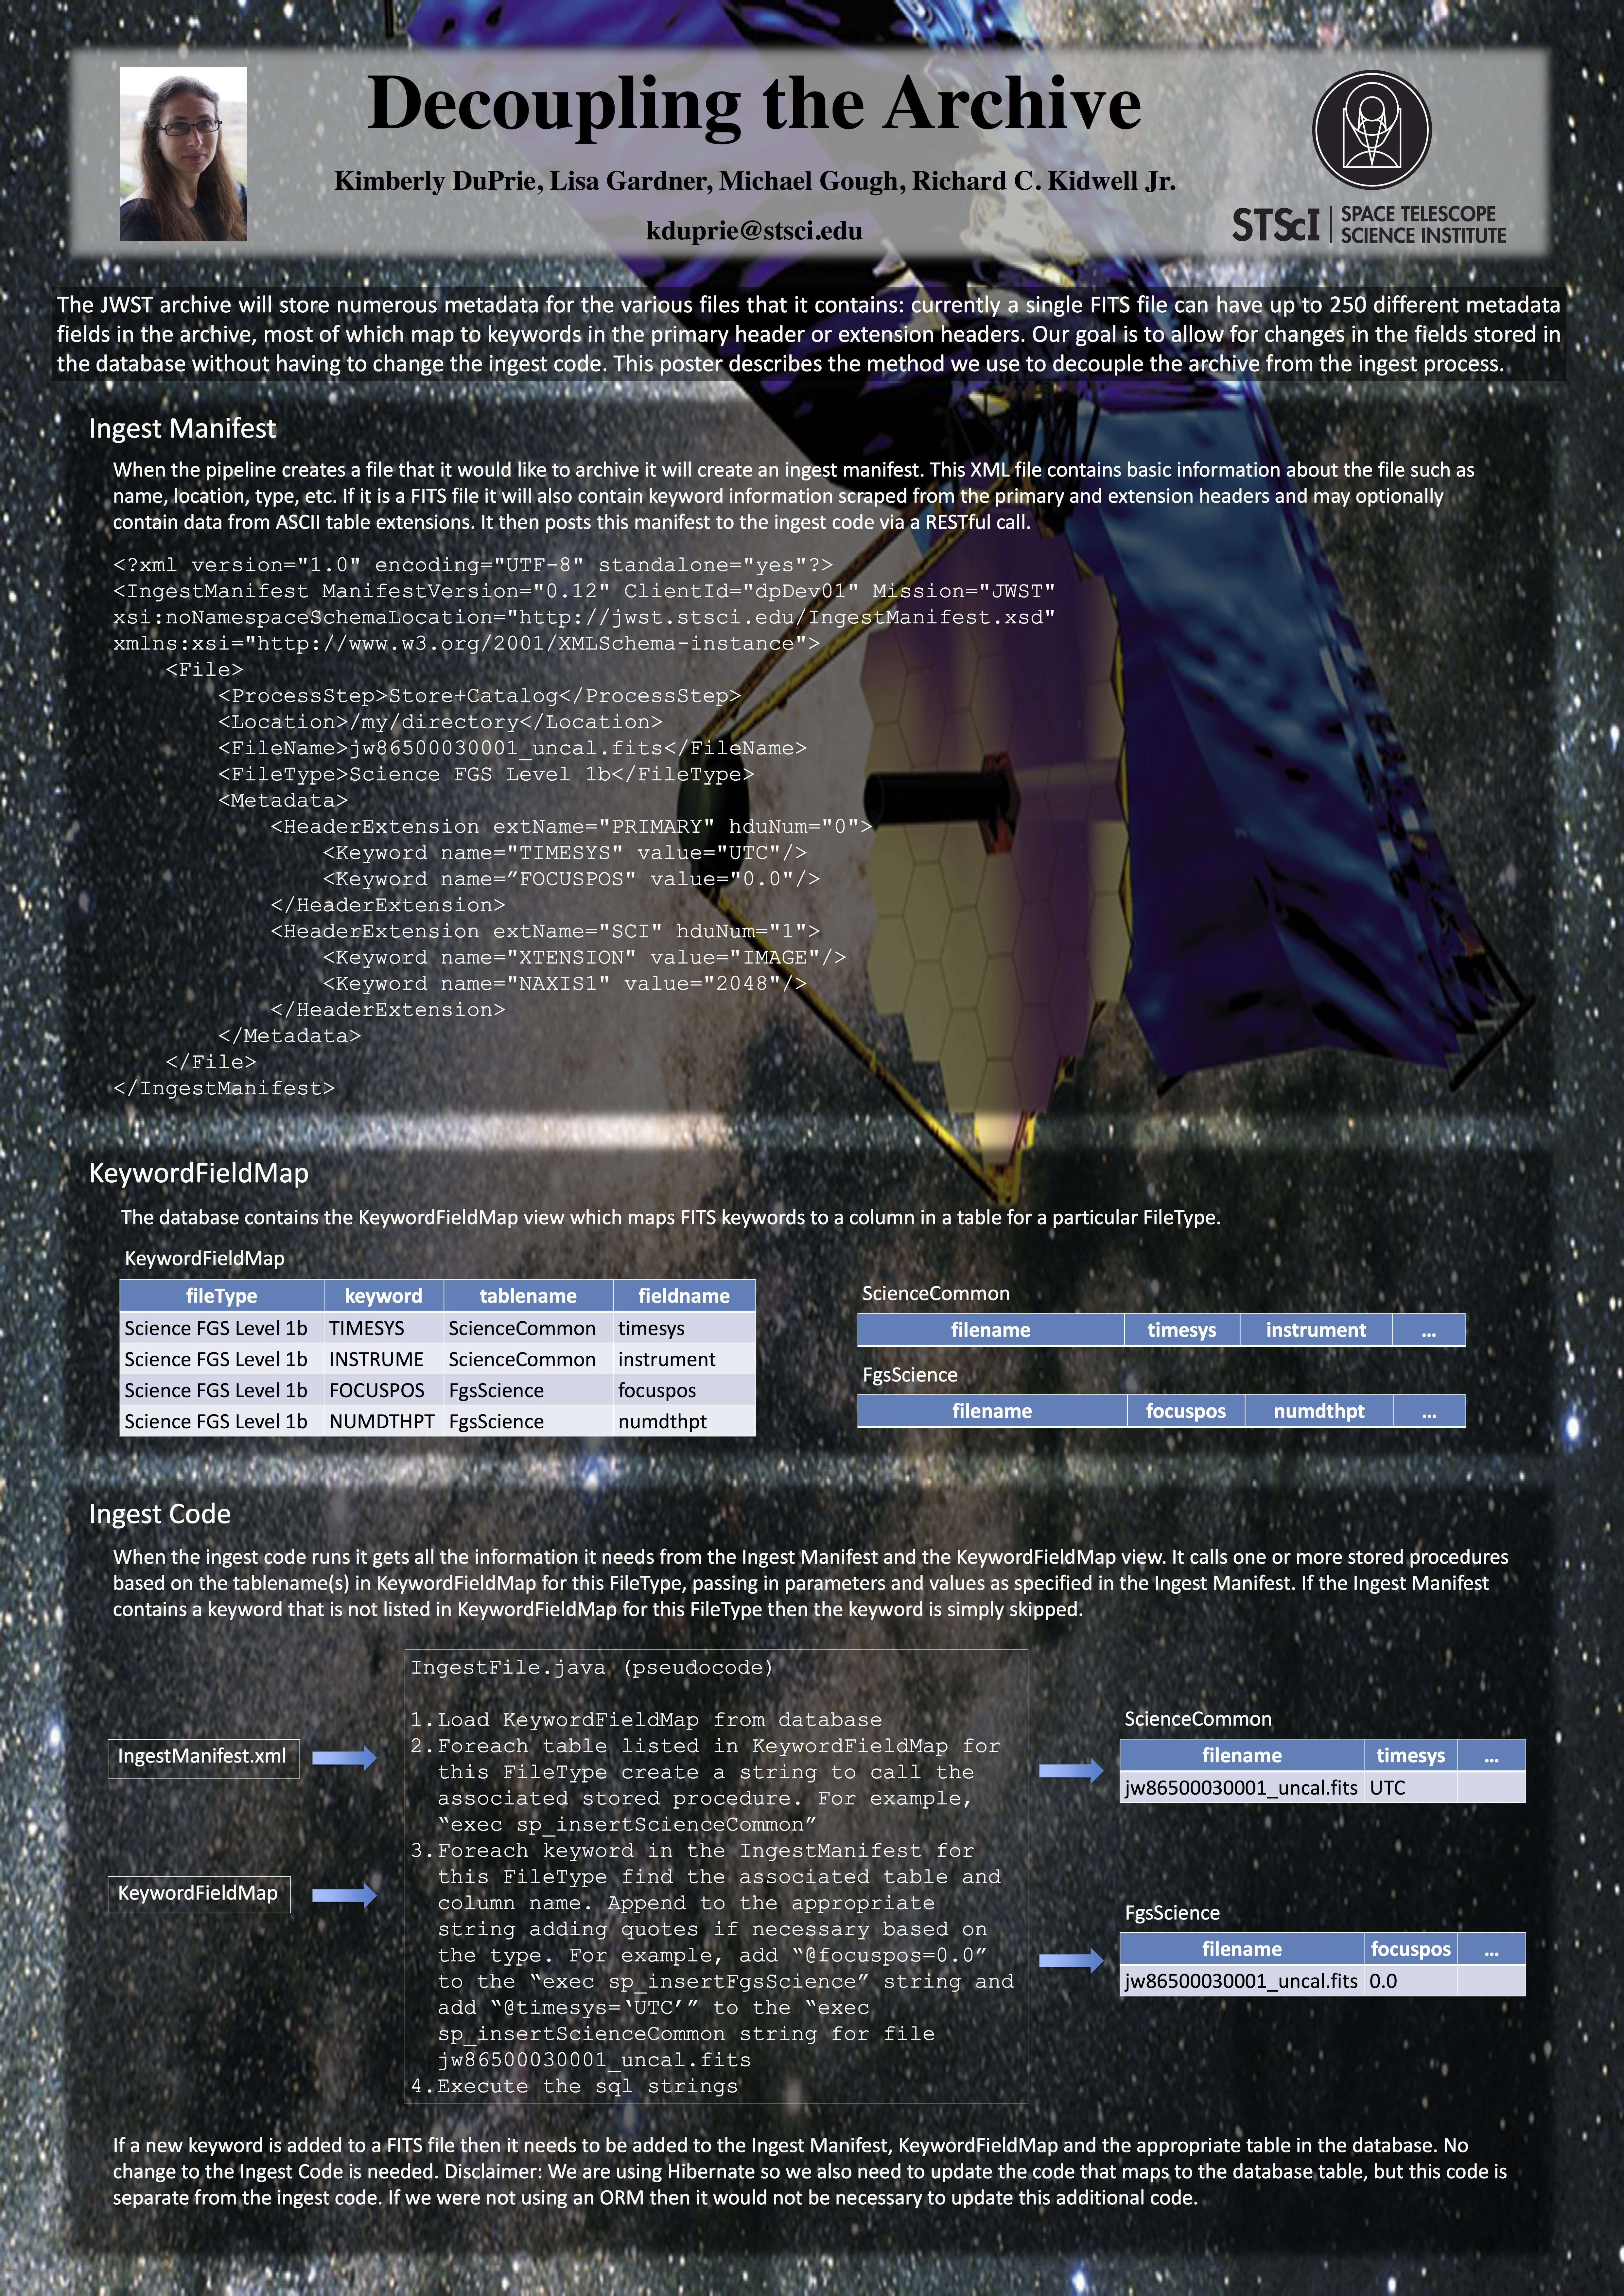 Decoupling the archive poster